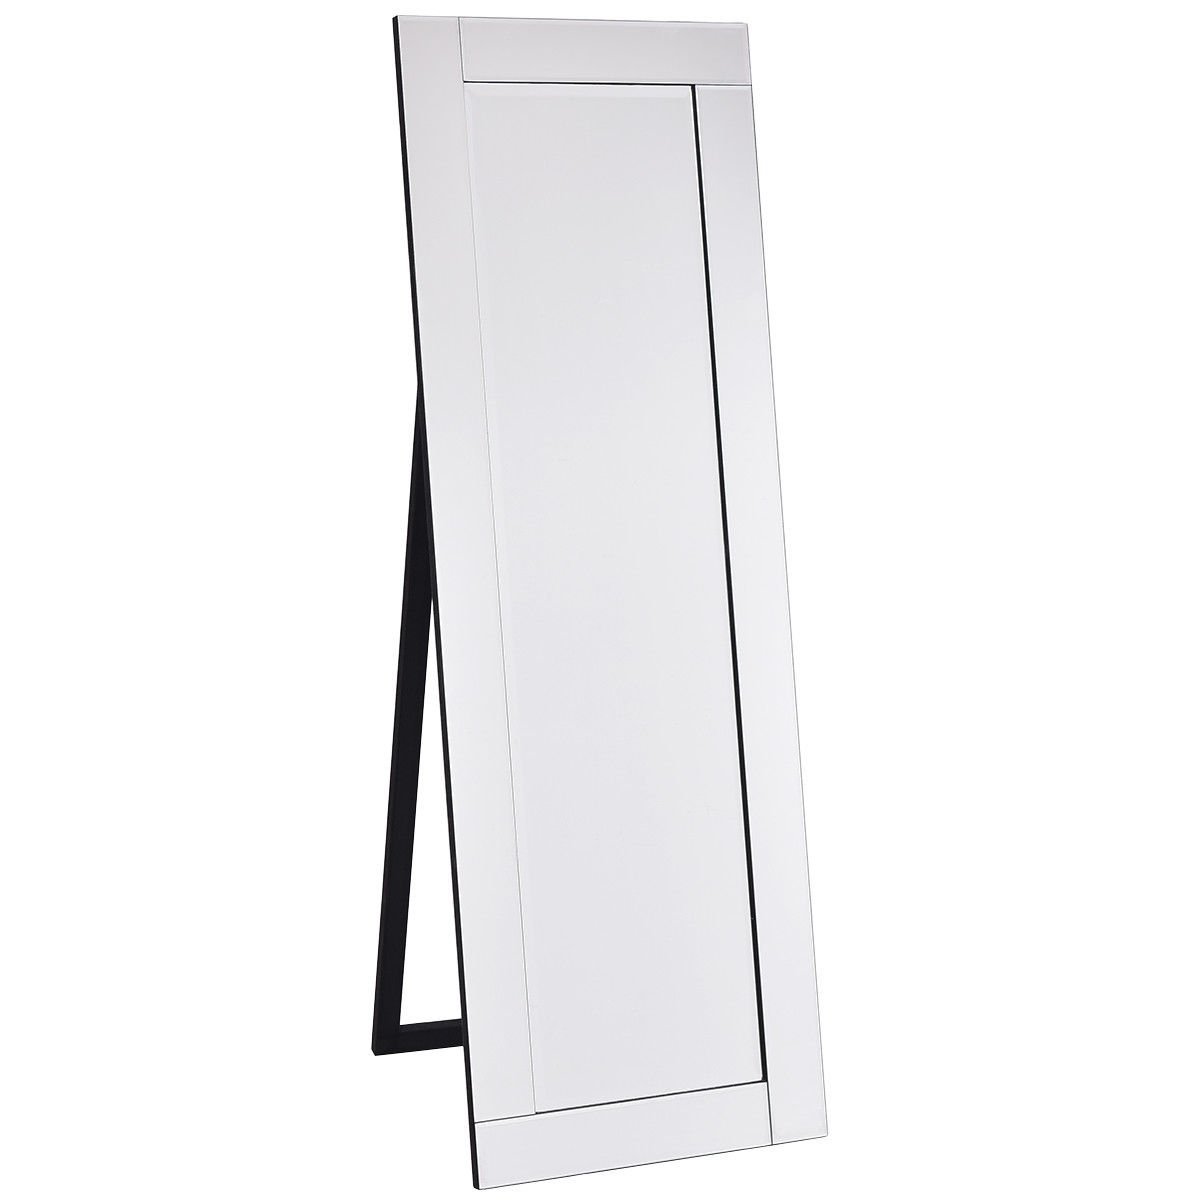 Giantex Full Length Dressing Mirror Wooden Frame Home Bedroom Floor Free Standing Mirror Silver